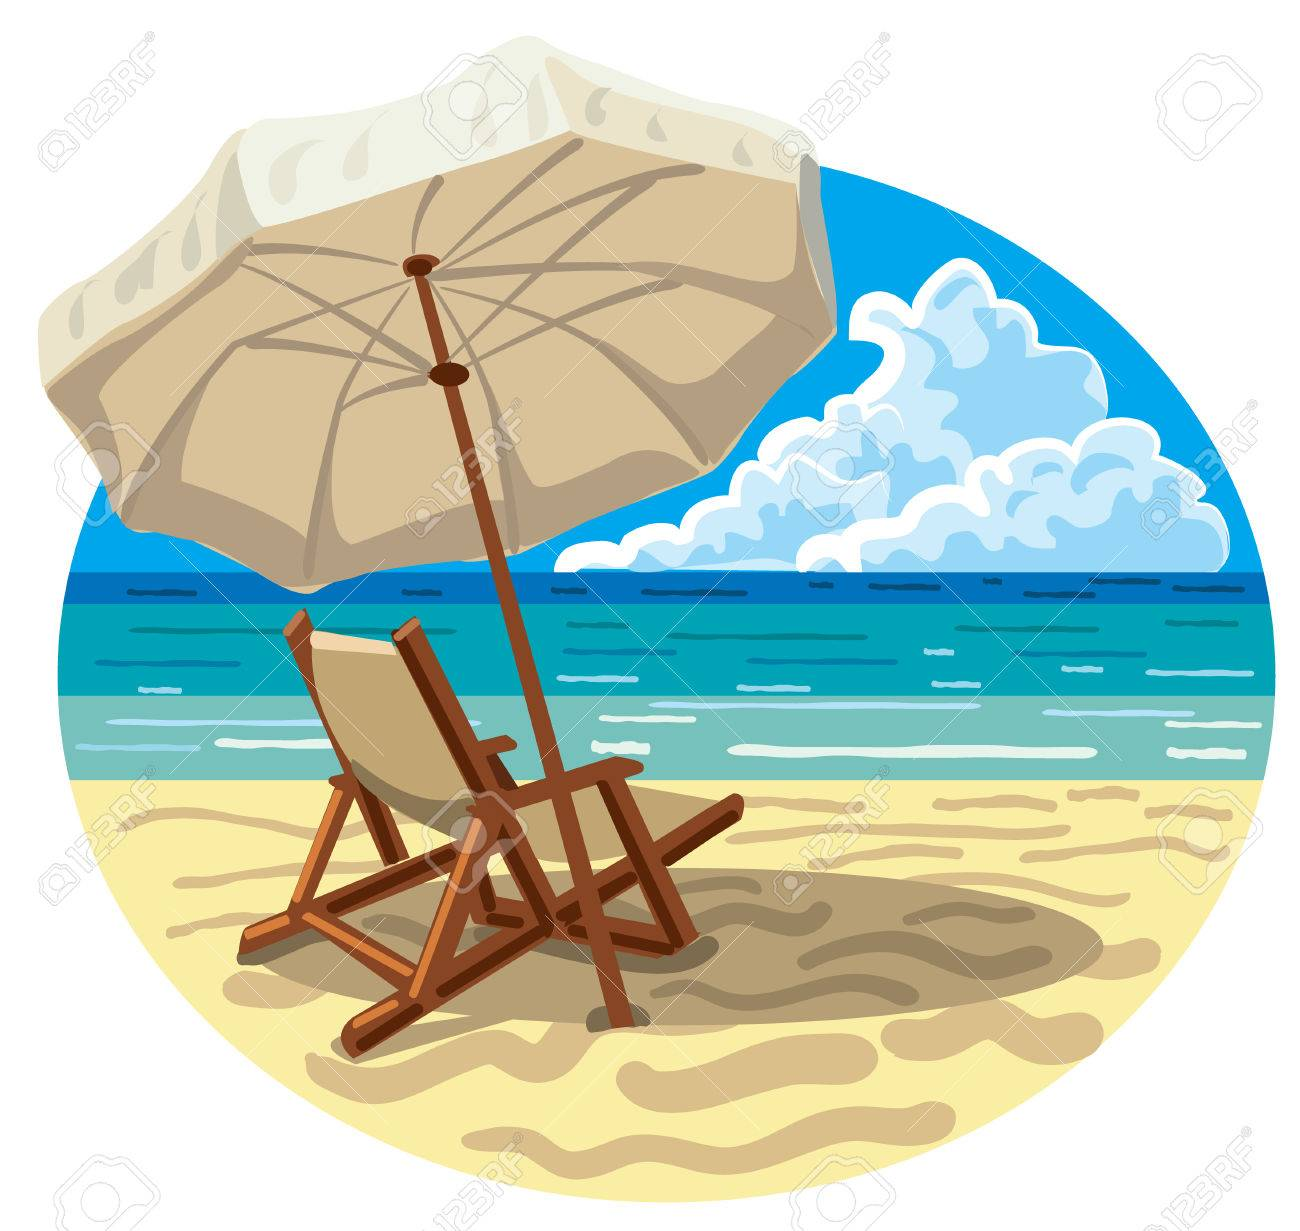 Illustration Of Lounge Chair And Umbrella On The Sand Sea Beach Stock  Vector   61116279